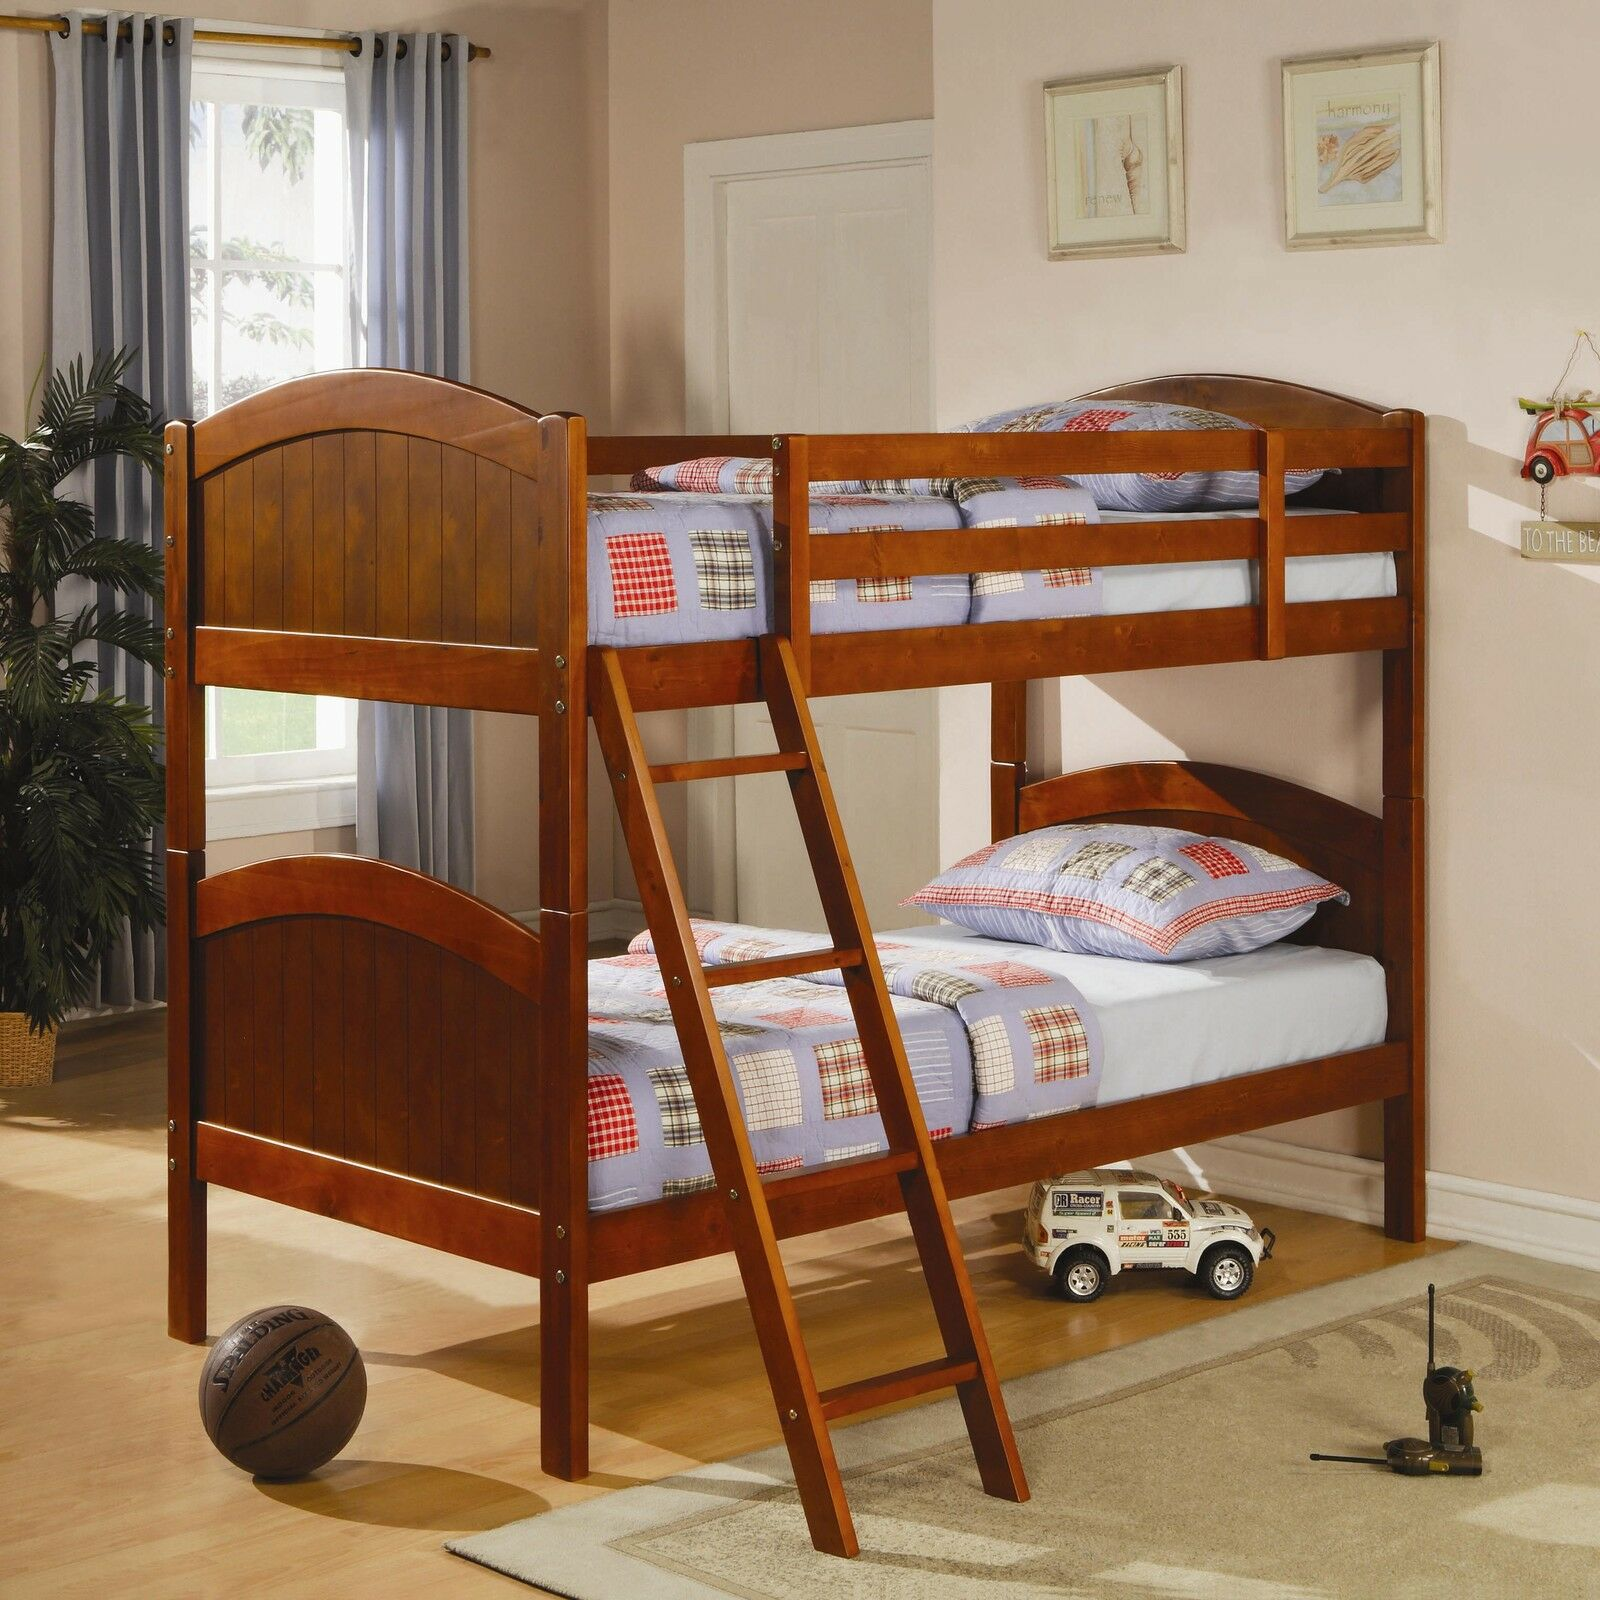 Baby jeep bed - Kids Bed Buying Guide